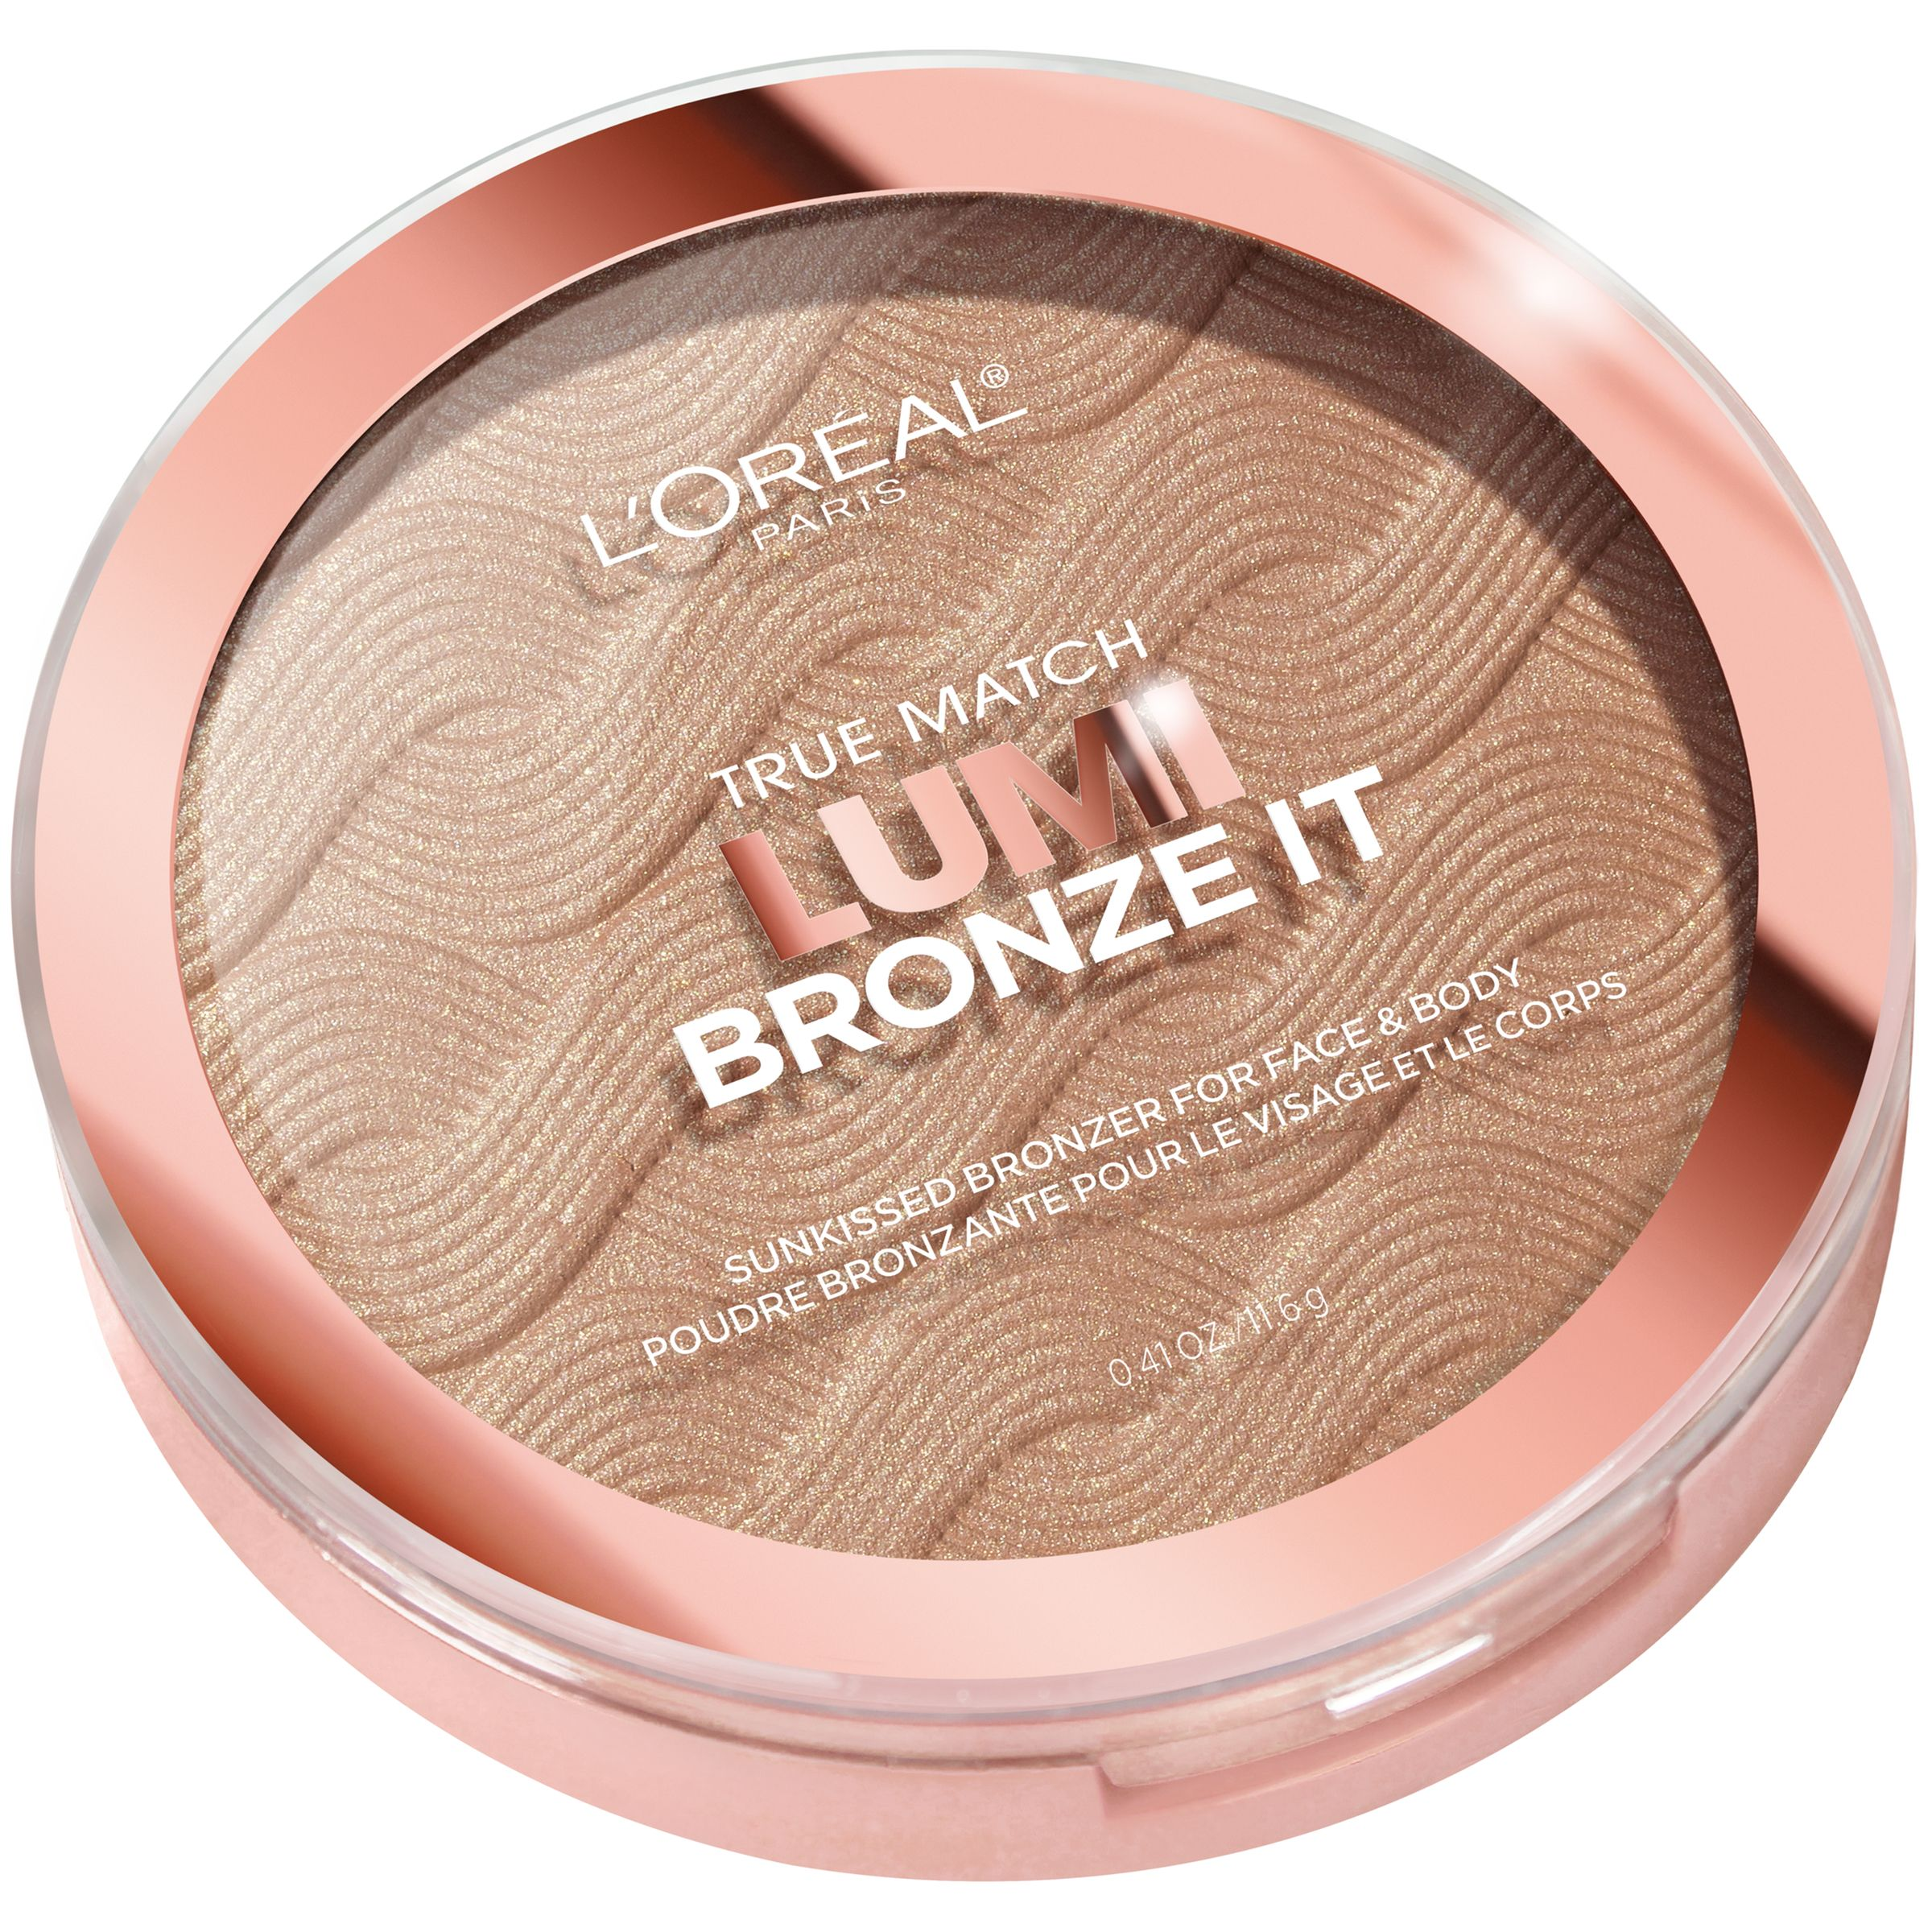 Image result for L'Oreal True Match Lumi Bronze it Bronzer